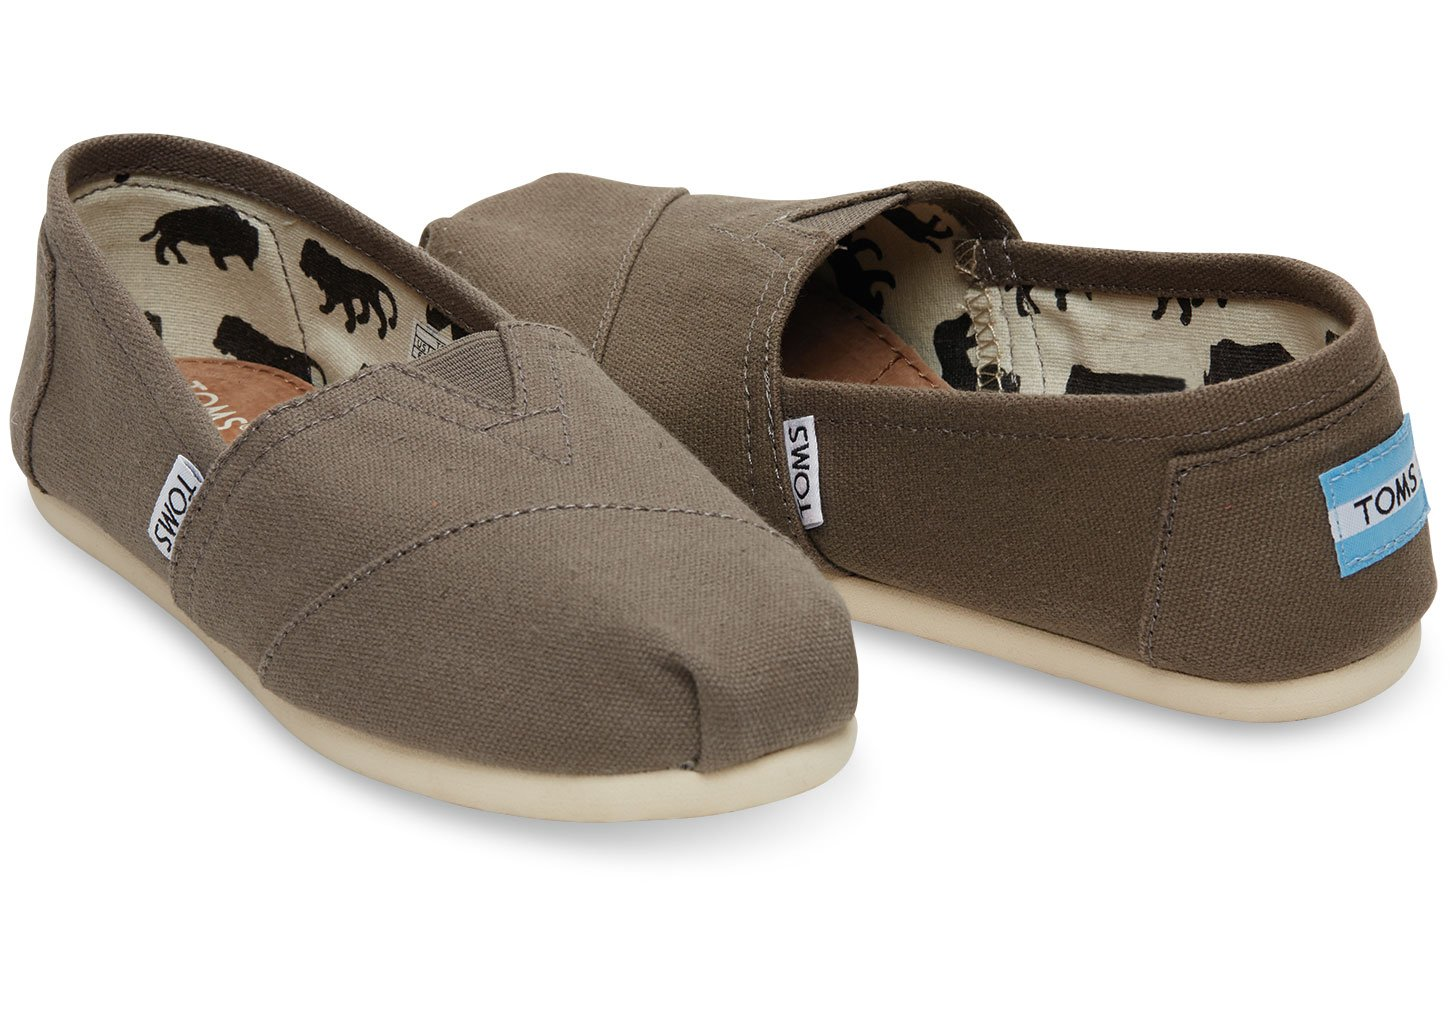 TOMS Women's Classic Canvas Slip-On,Ash,9.5 M US by TOMS